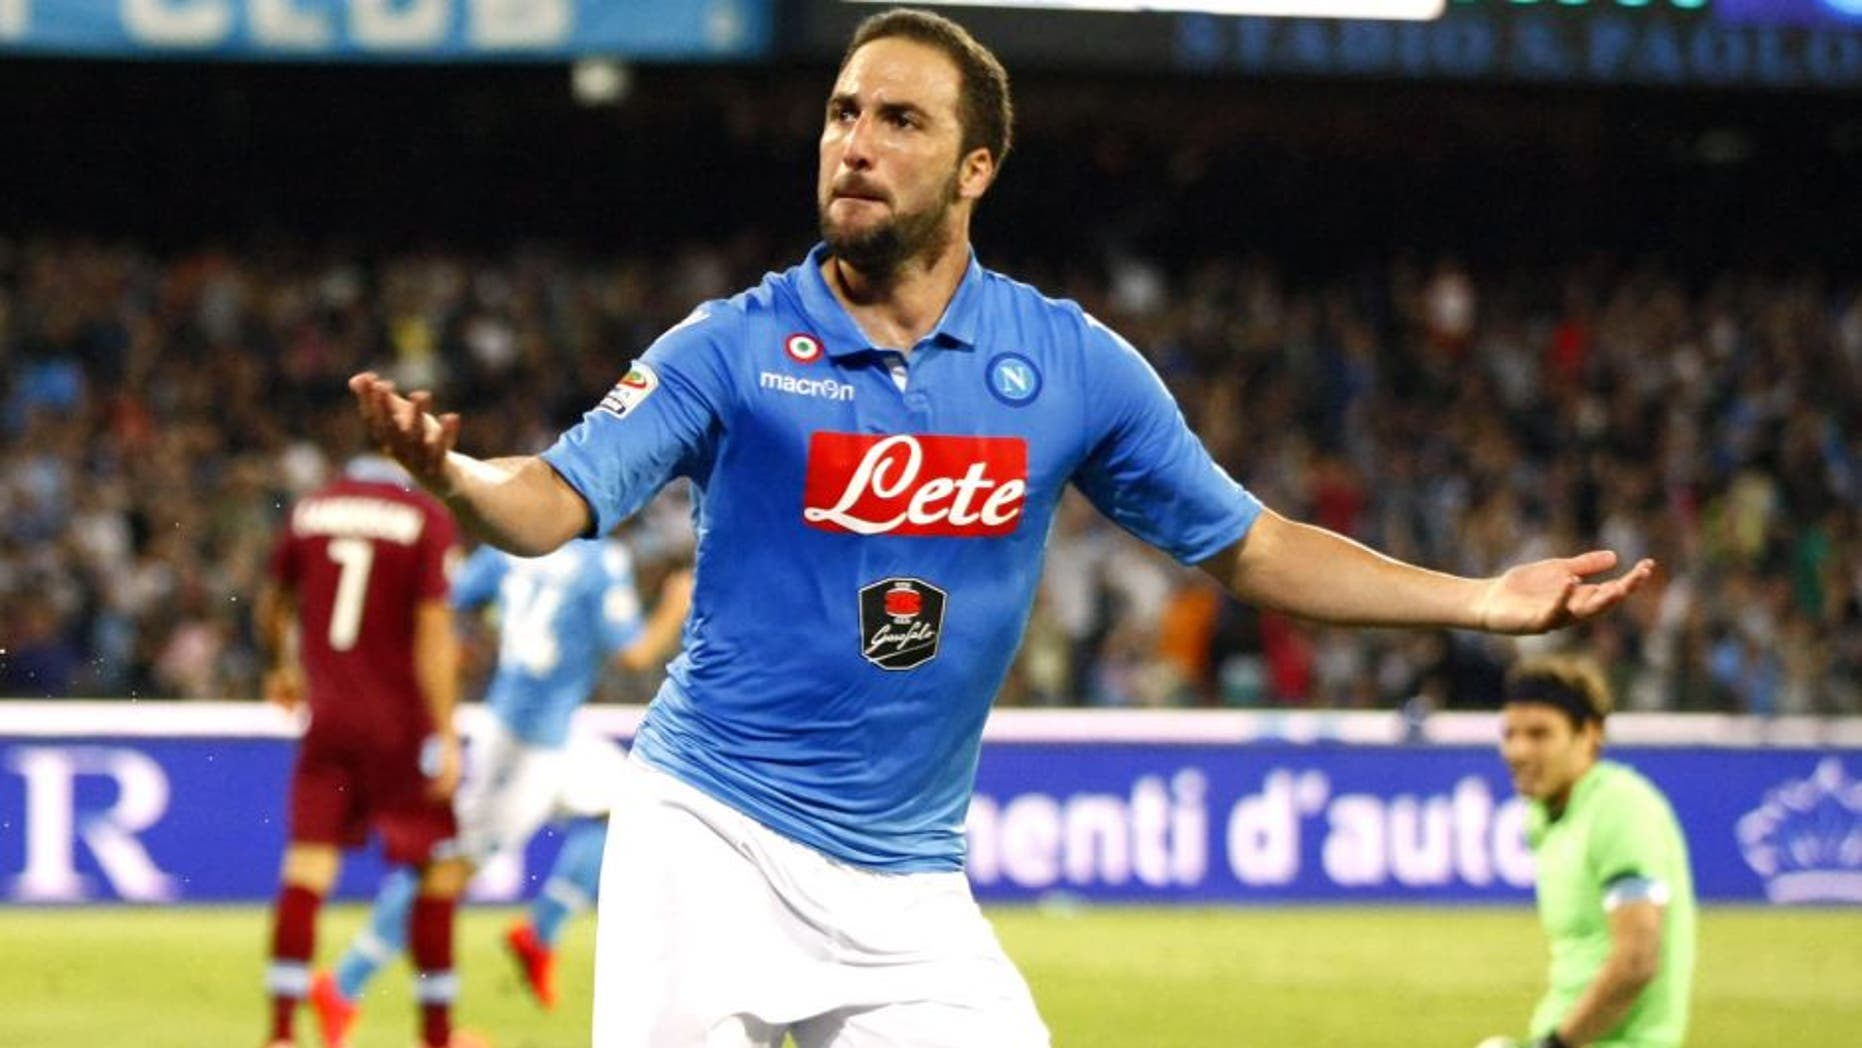 Napoli's forward from Argentina and France Gonzalo Higuain celebrates after scoring during the Italian Serie A football match SSC Napoli vs SS Lazio on May 31, 2015 at the San Paolo stadium in Naples. AFP PHOTO/CARLO HERMANN (Photo credit should read CARLO HERMANN/AFP/Getty Images)